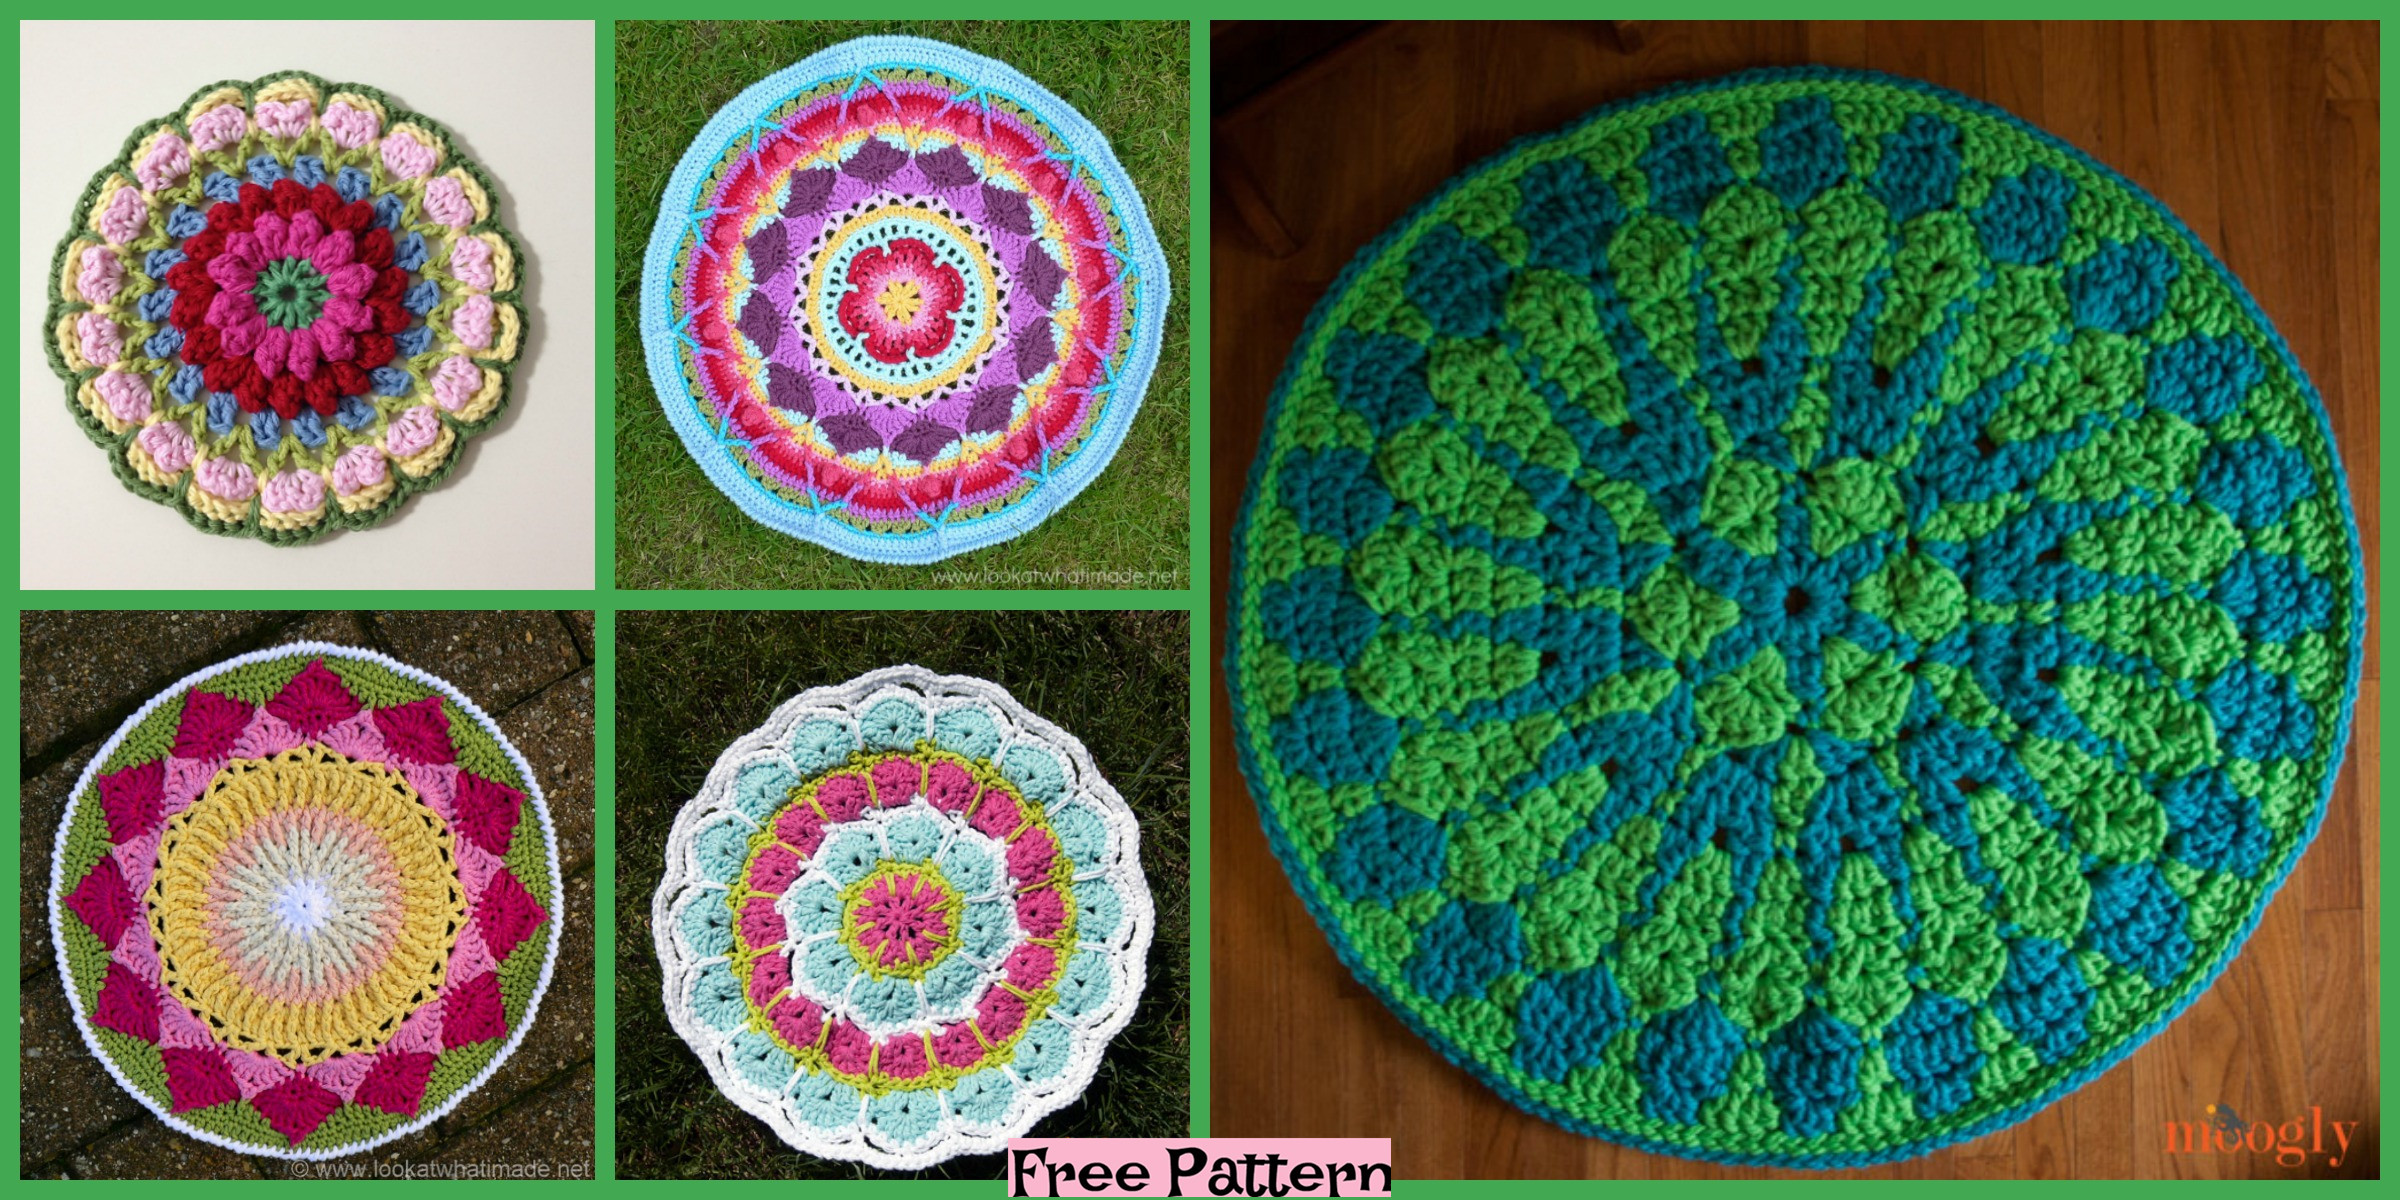 8 Crochet Mandala Rugs – Free Patterns